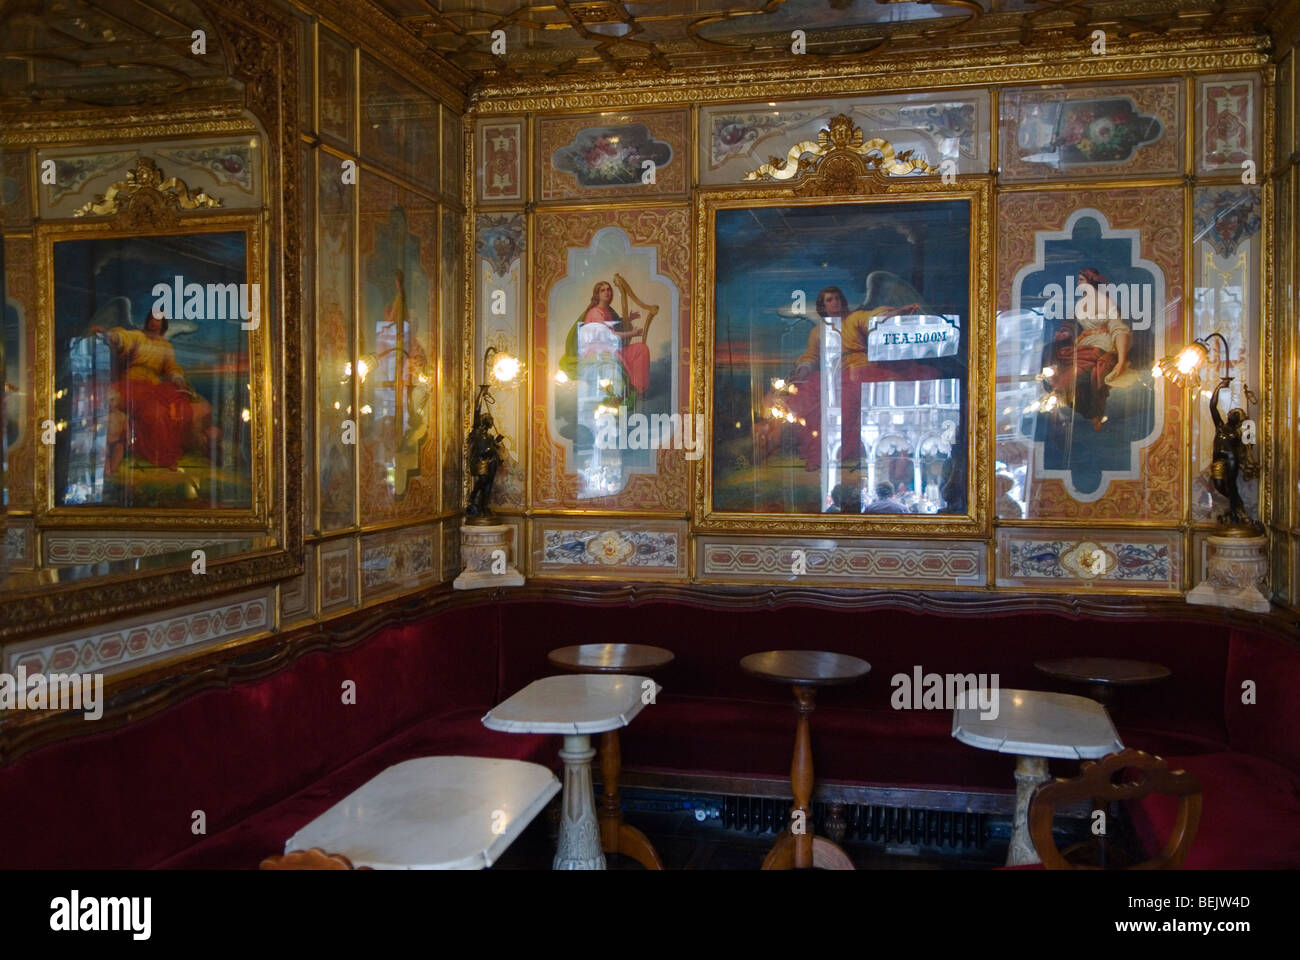 Venice Italy 2009. Florian Tea Room interior. Piazza San Marco St Marks Square - Stock Image